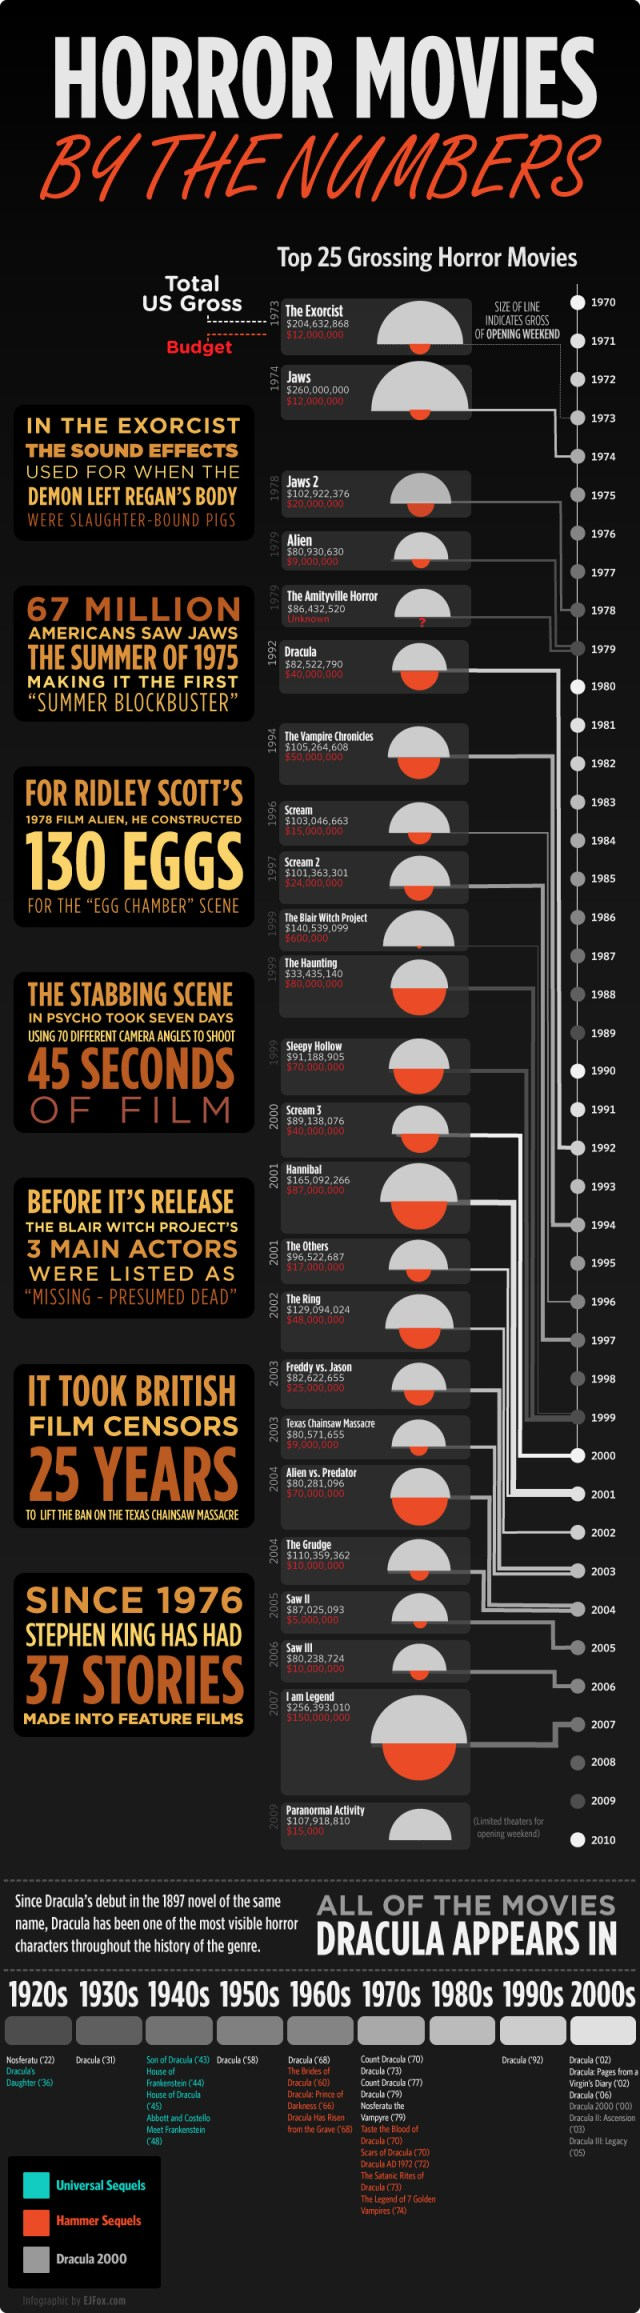 Horror Movies by the Numbers